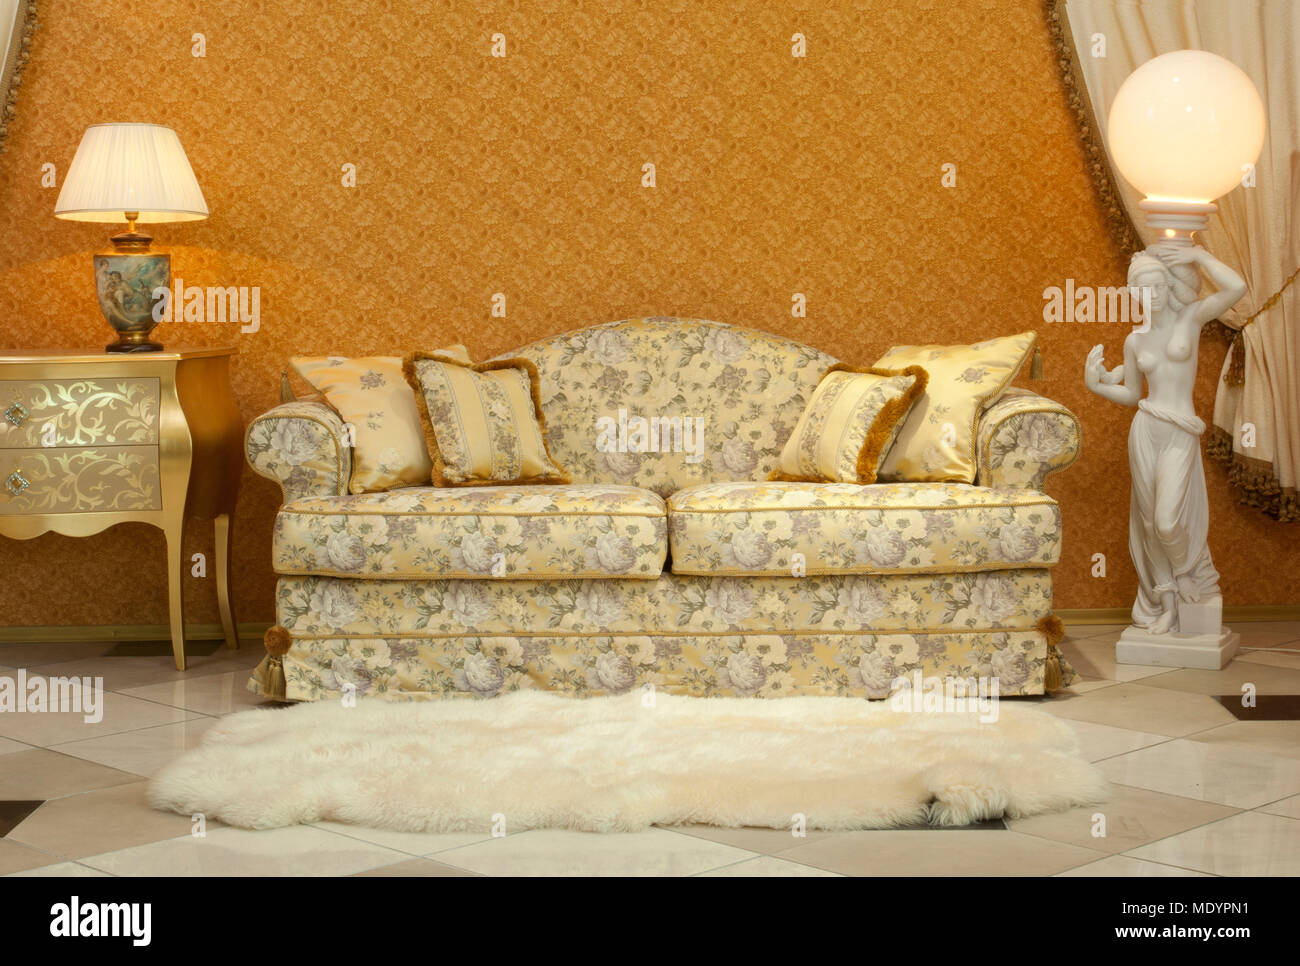 Empty Interior Living Room Background In Warm Colors Decorated With Classic Luxury  Furniture Sofa, Fur On The Floor And Lamps